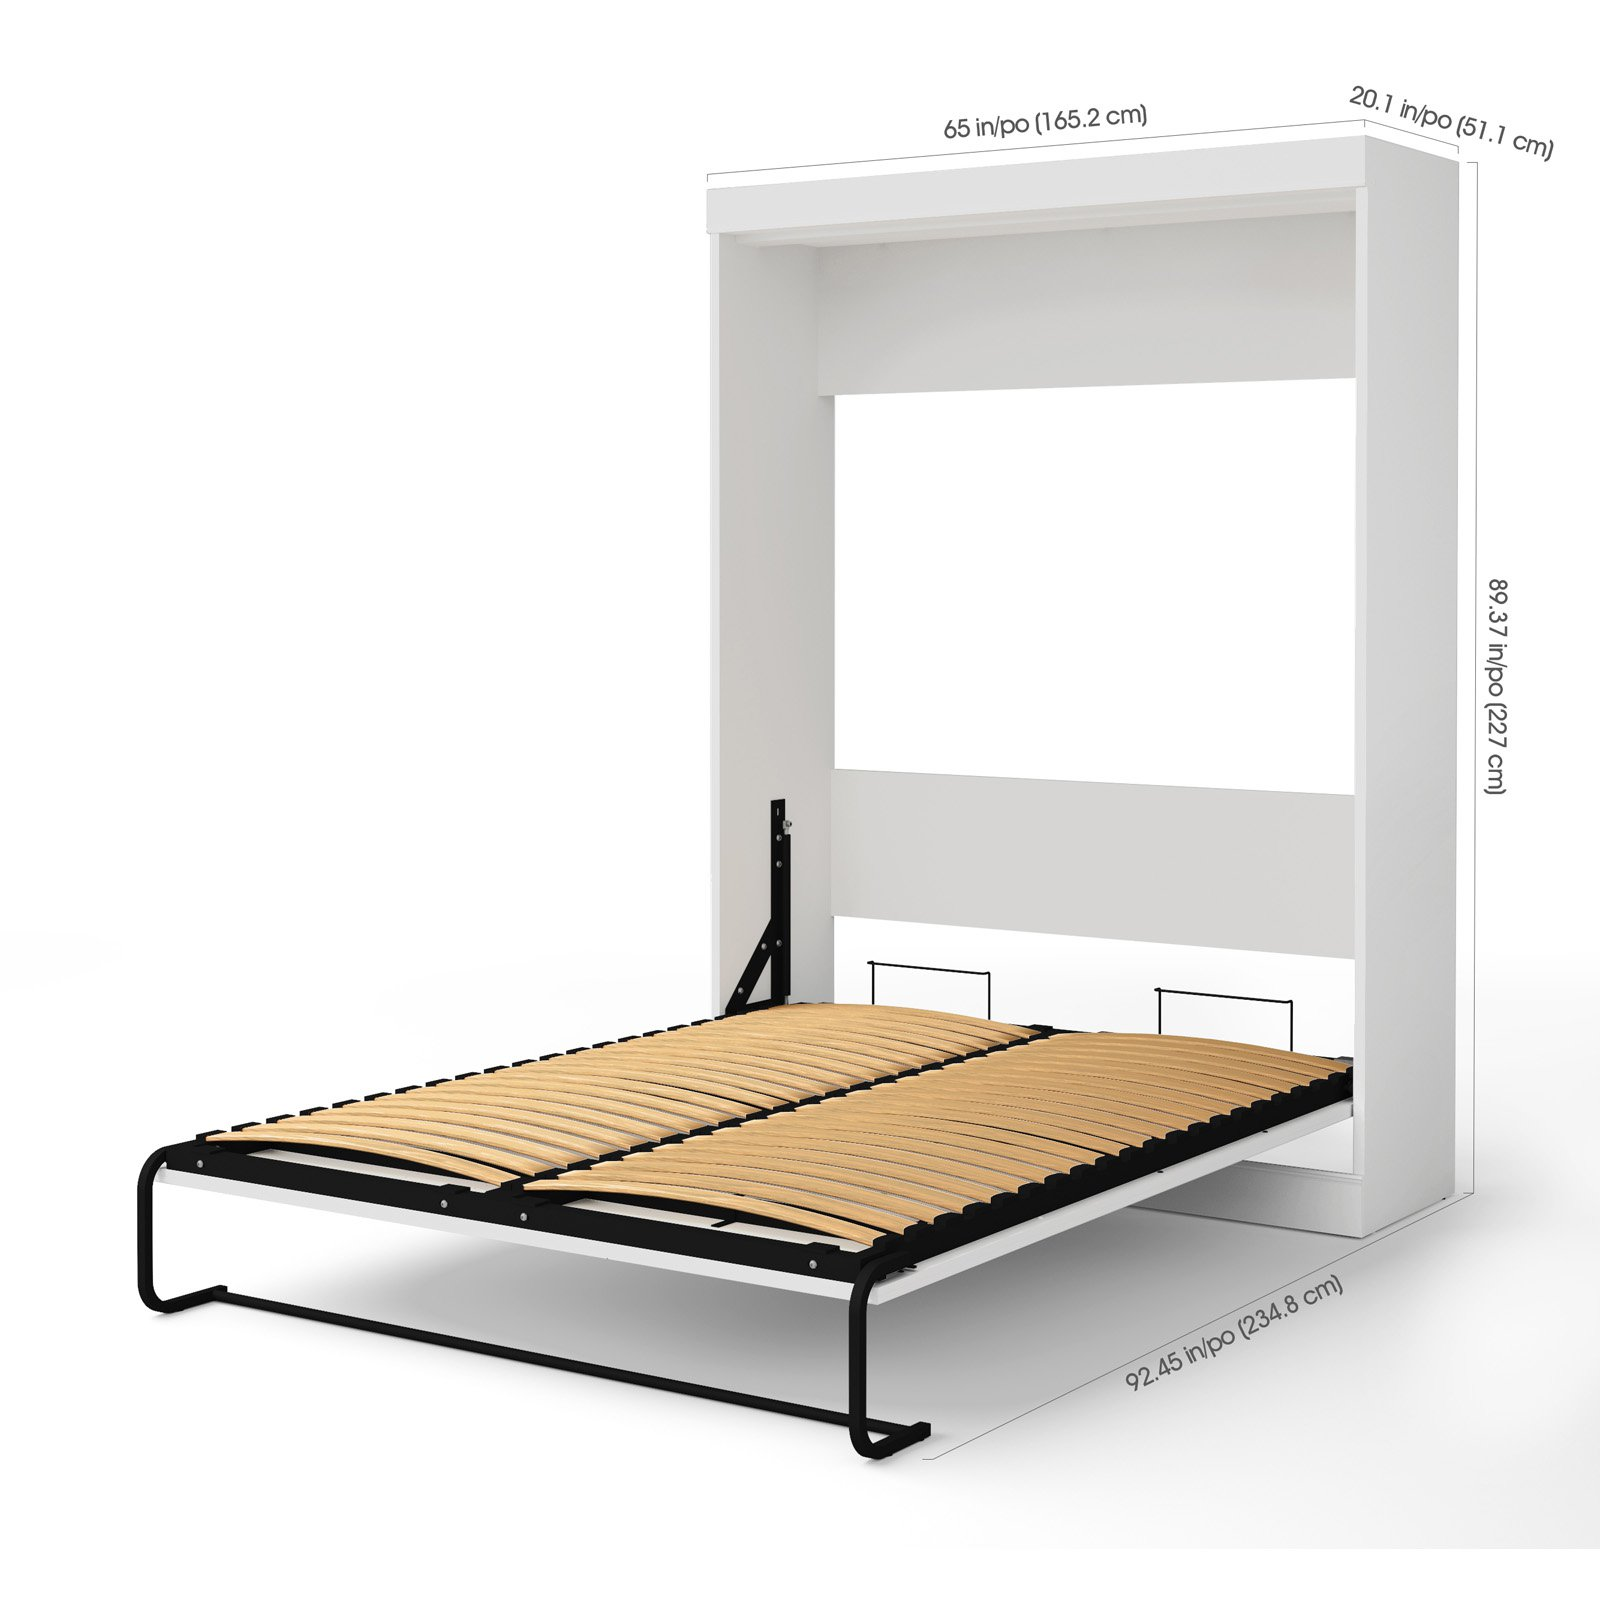 Bestar Edge Murphy Bed with 2 Storage Units - Queen